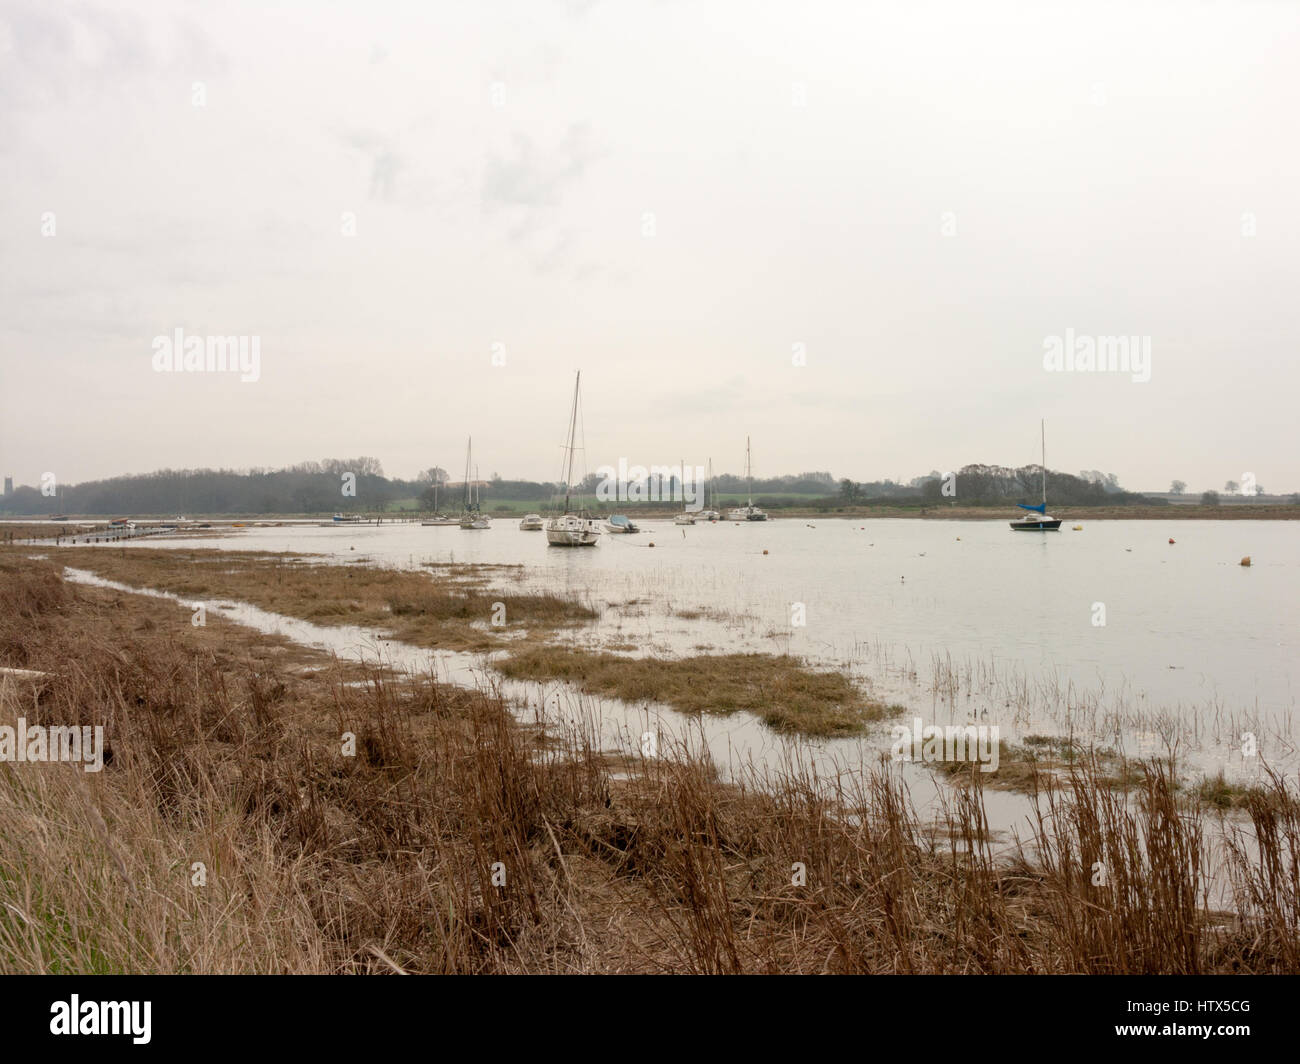 Along the grassy waterfront of Wivenhoe down into Alresford. - Stock Image